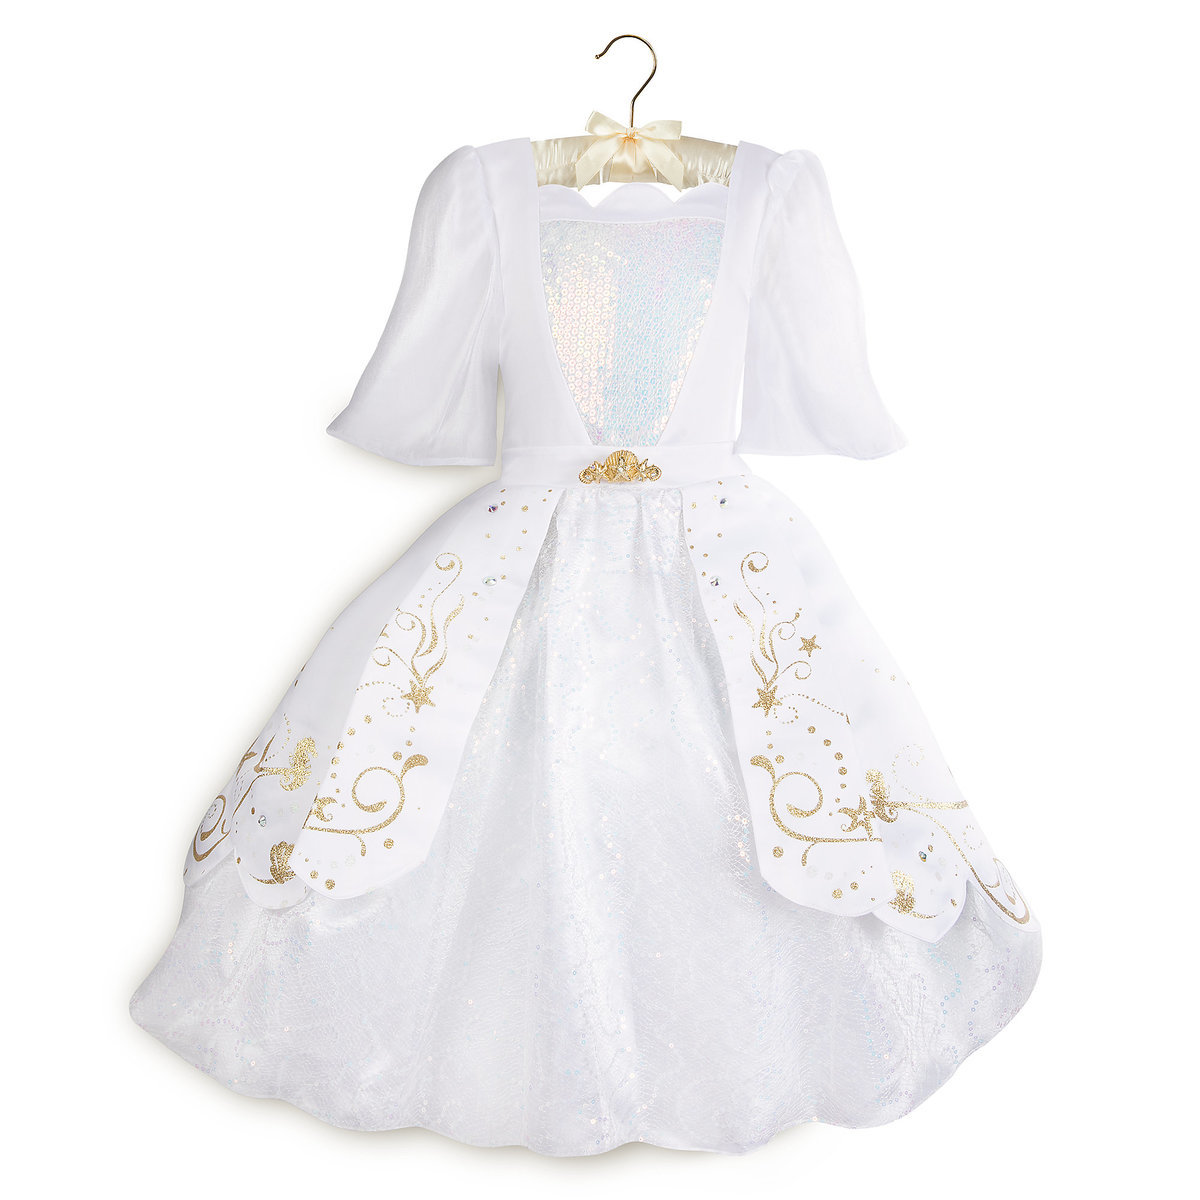 7511d5f4072e9 Product Image of Ariel Designer Wedding Gown Costume for Kids # 1